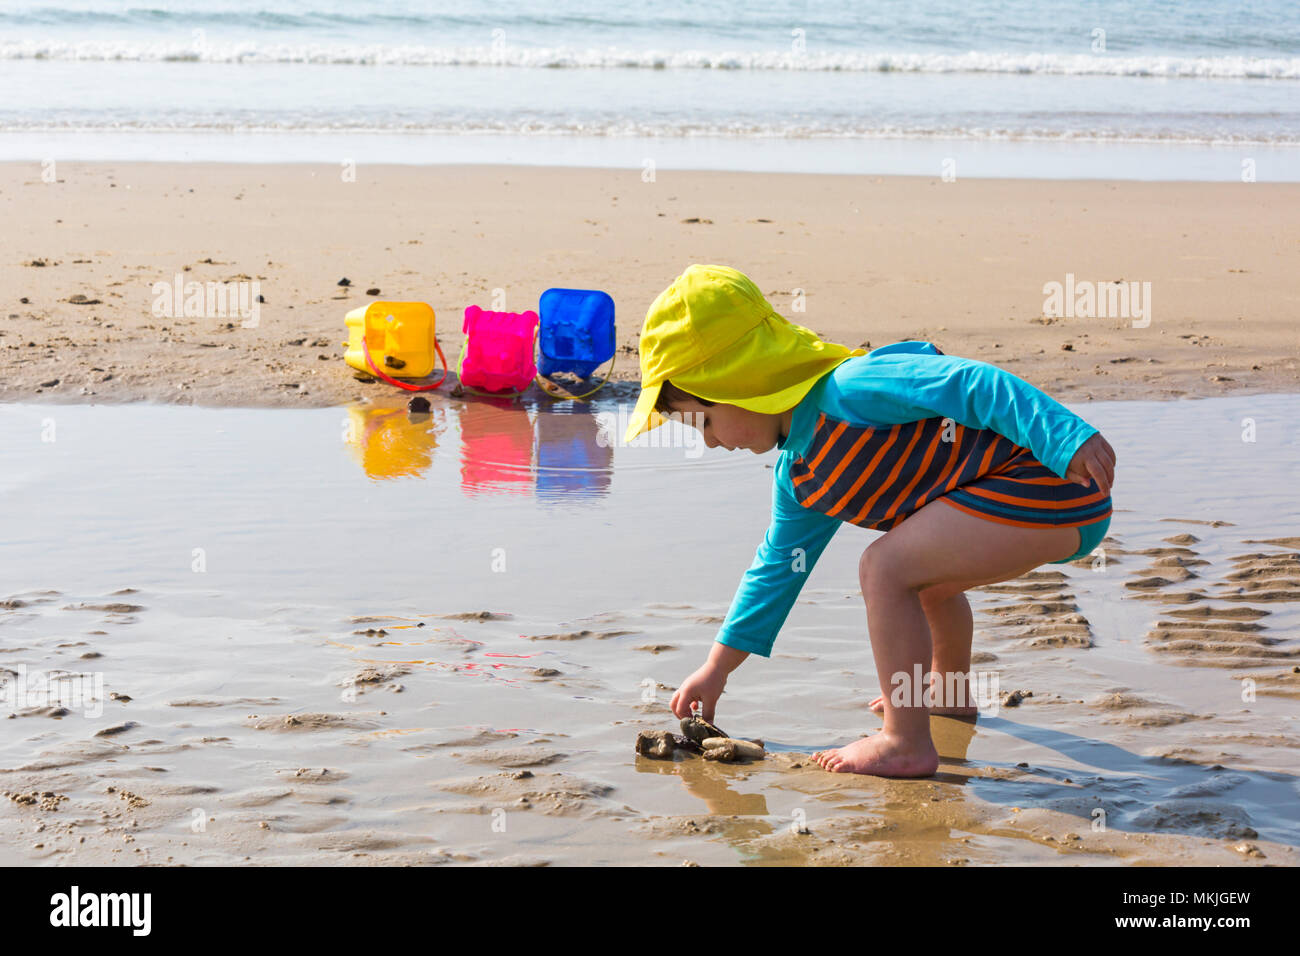 Bournemouth, Dorset, UK. 8th May 2018. UK weather: warm sunny start to the day, as a young lad (aged 4) enjoys playing at the seaside with a game of throw the stones and shells into the buckets on the seashore at Alum Chine beach. Credit: Carolyn Jenkins/Alamy Live News Stock Photo